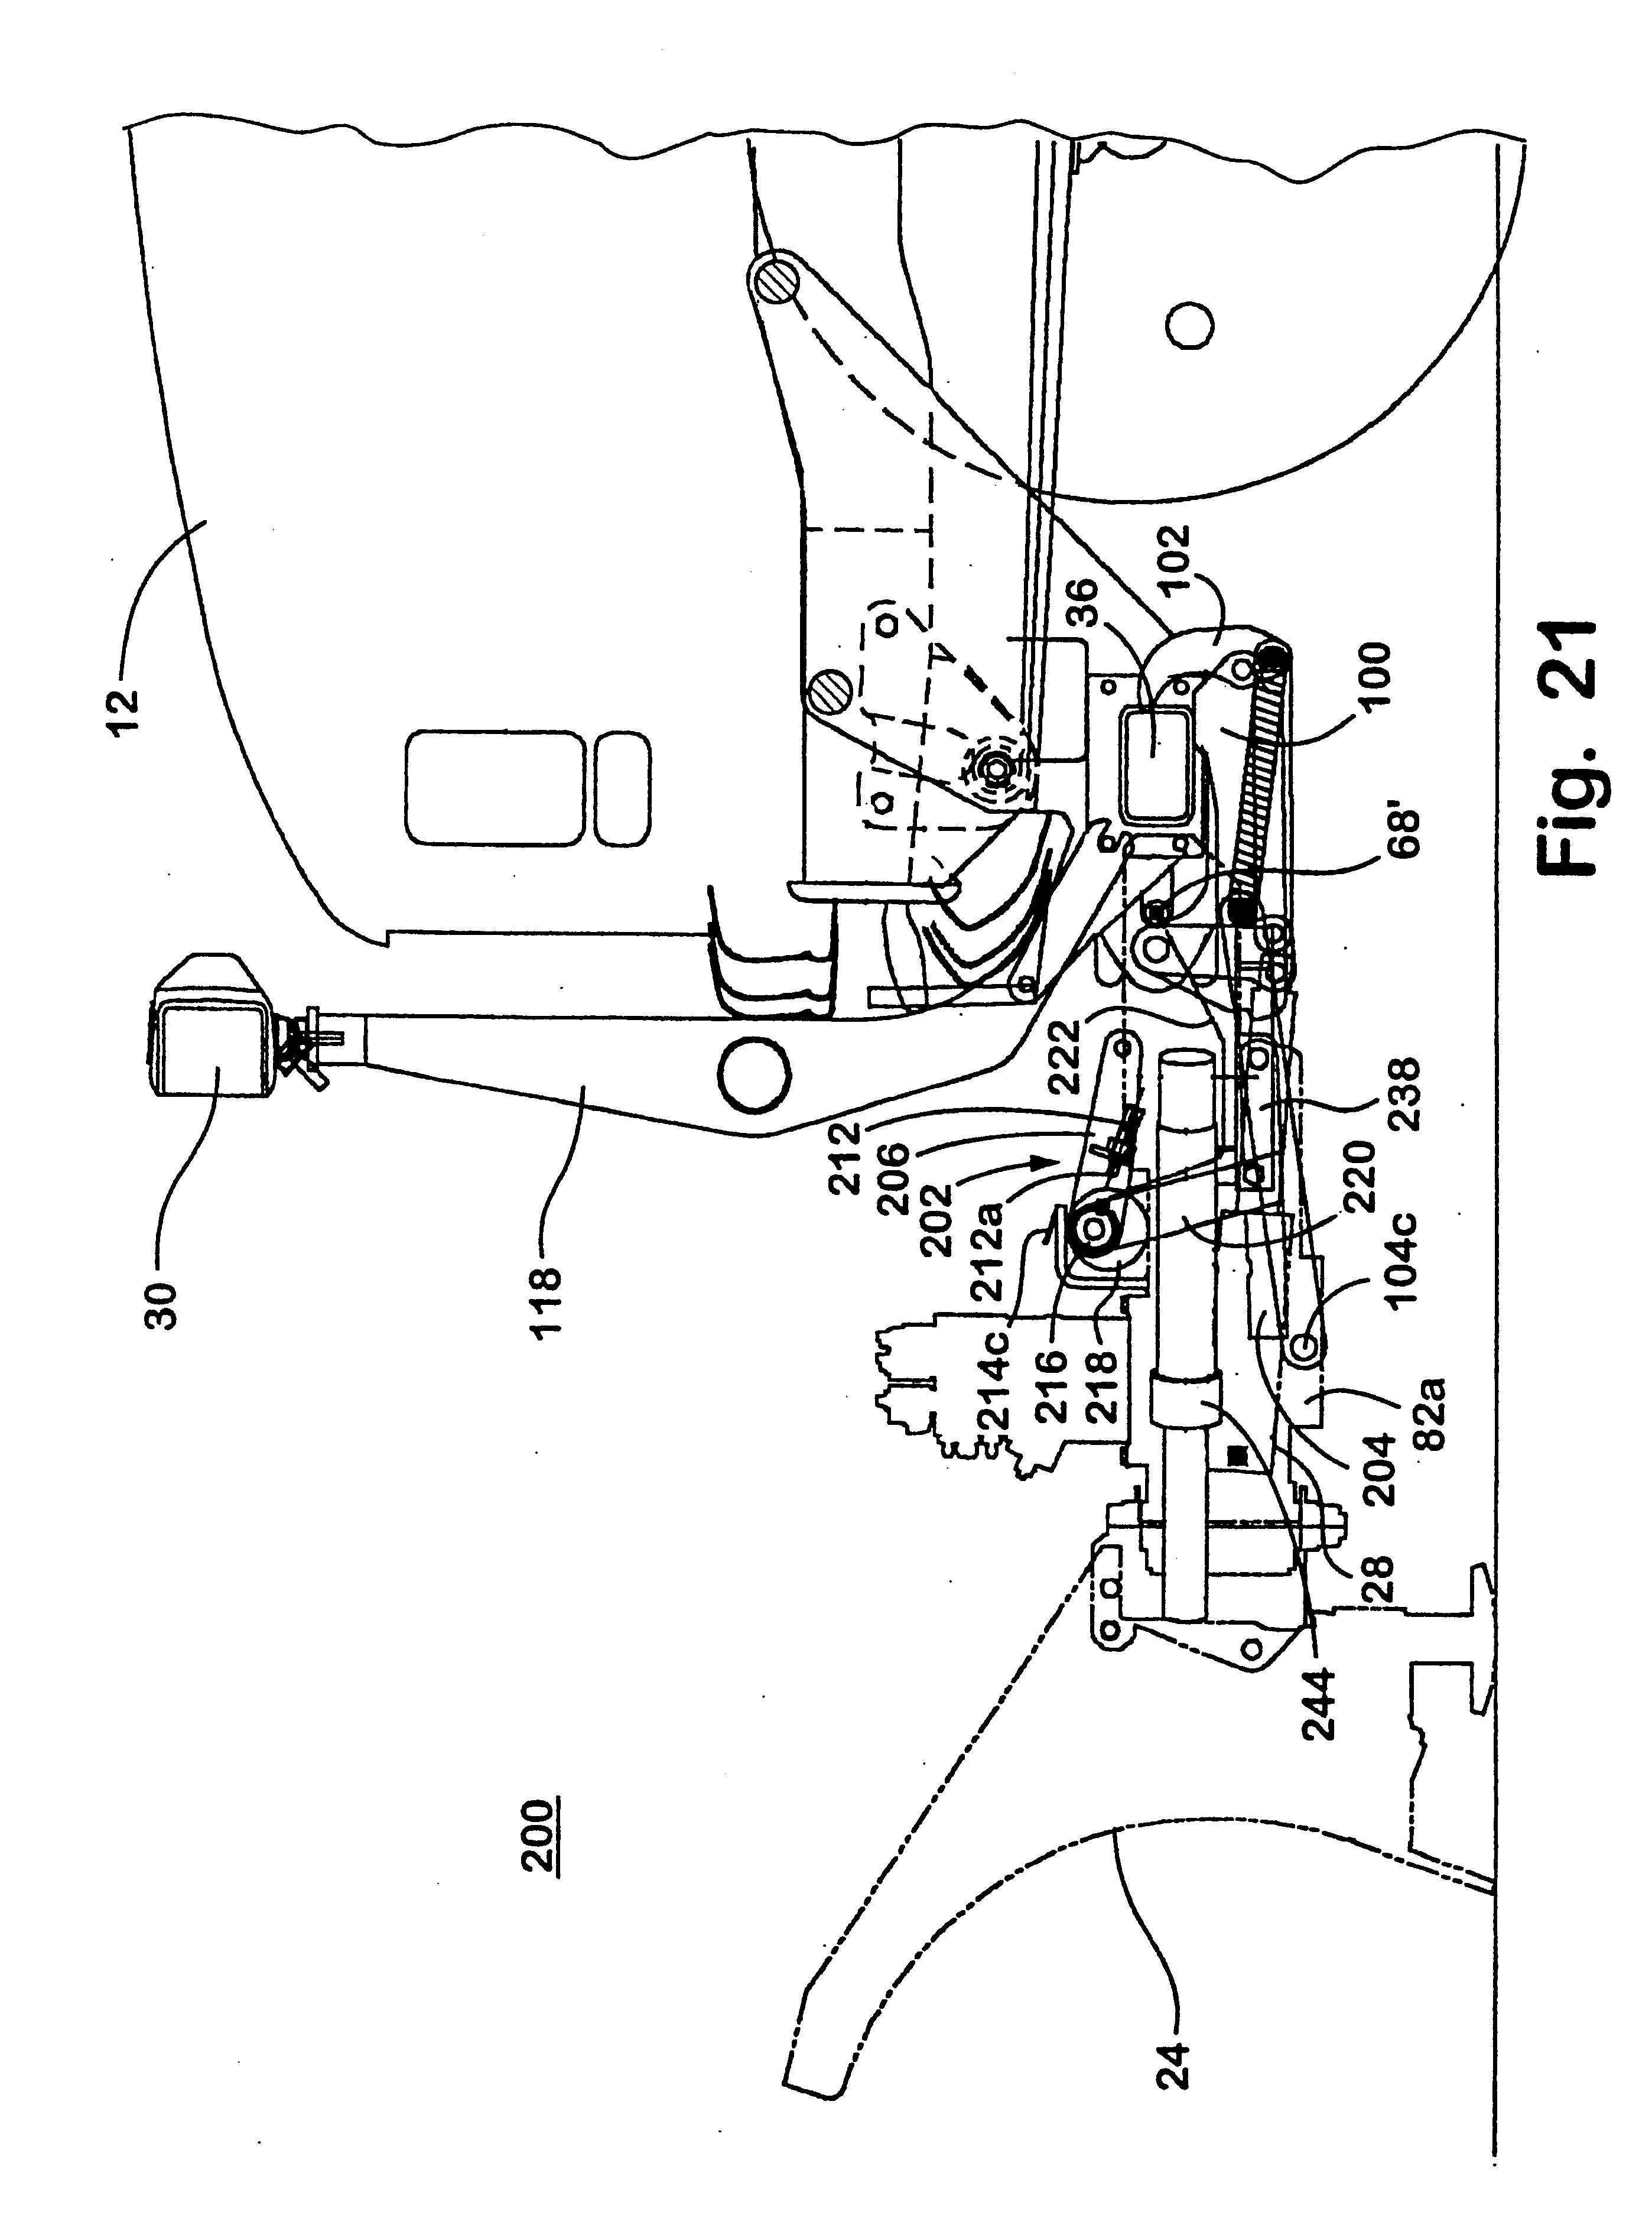 patent us6276076 plow hitch assembly for vehicles patents Boss Snow Plow Light Wiring Diagram patent drawing